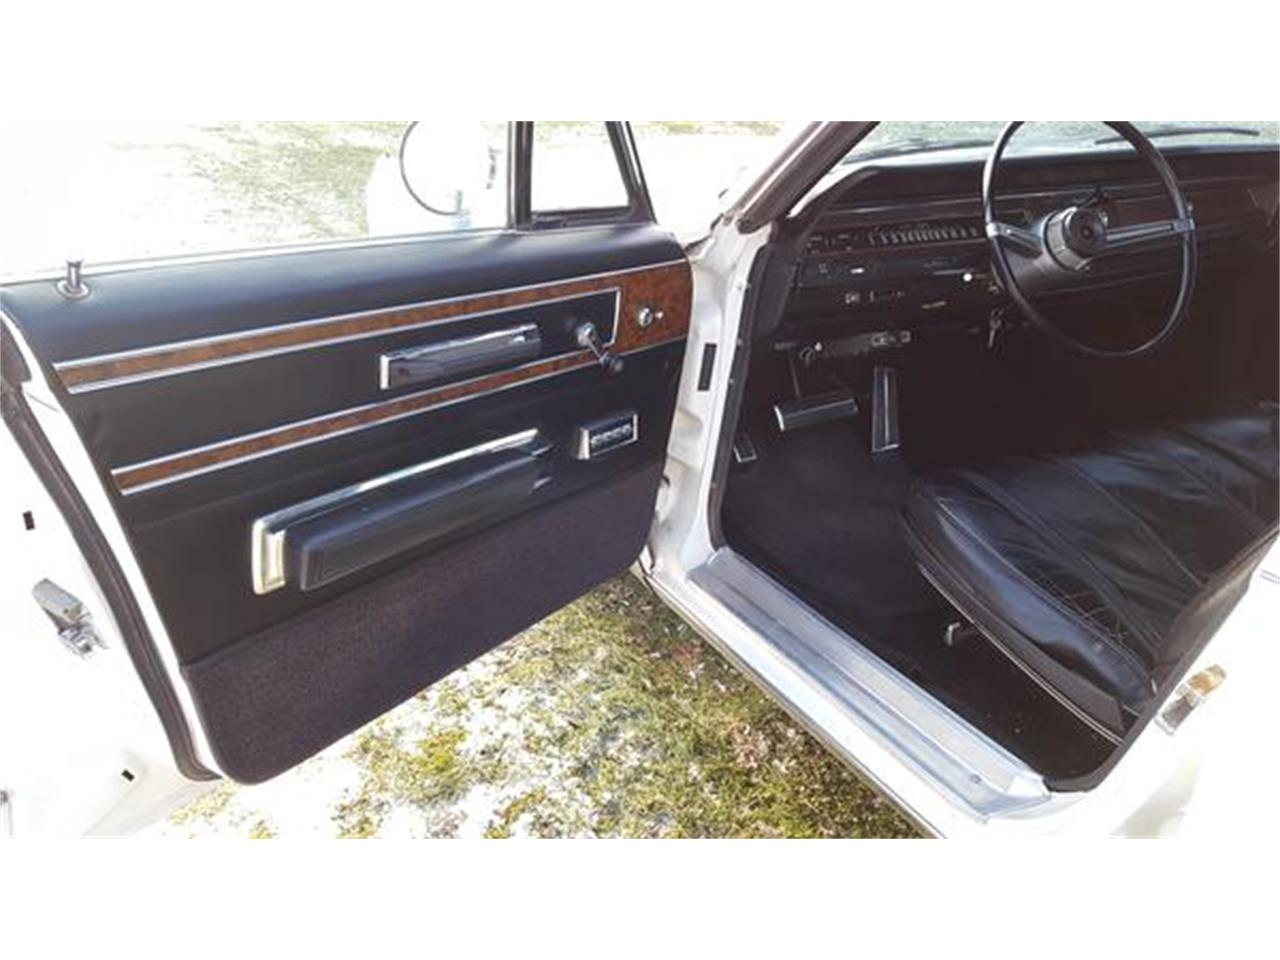 1968 Chrysler New Yorker for sale in New Ulm, MN – photo 8